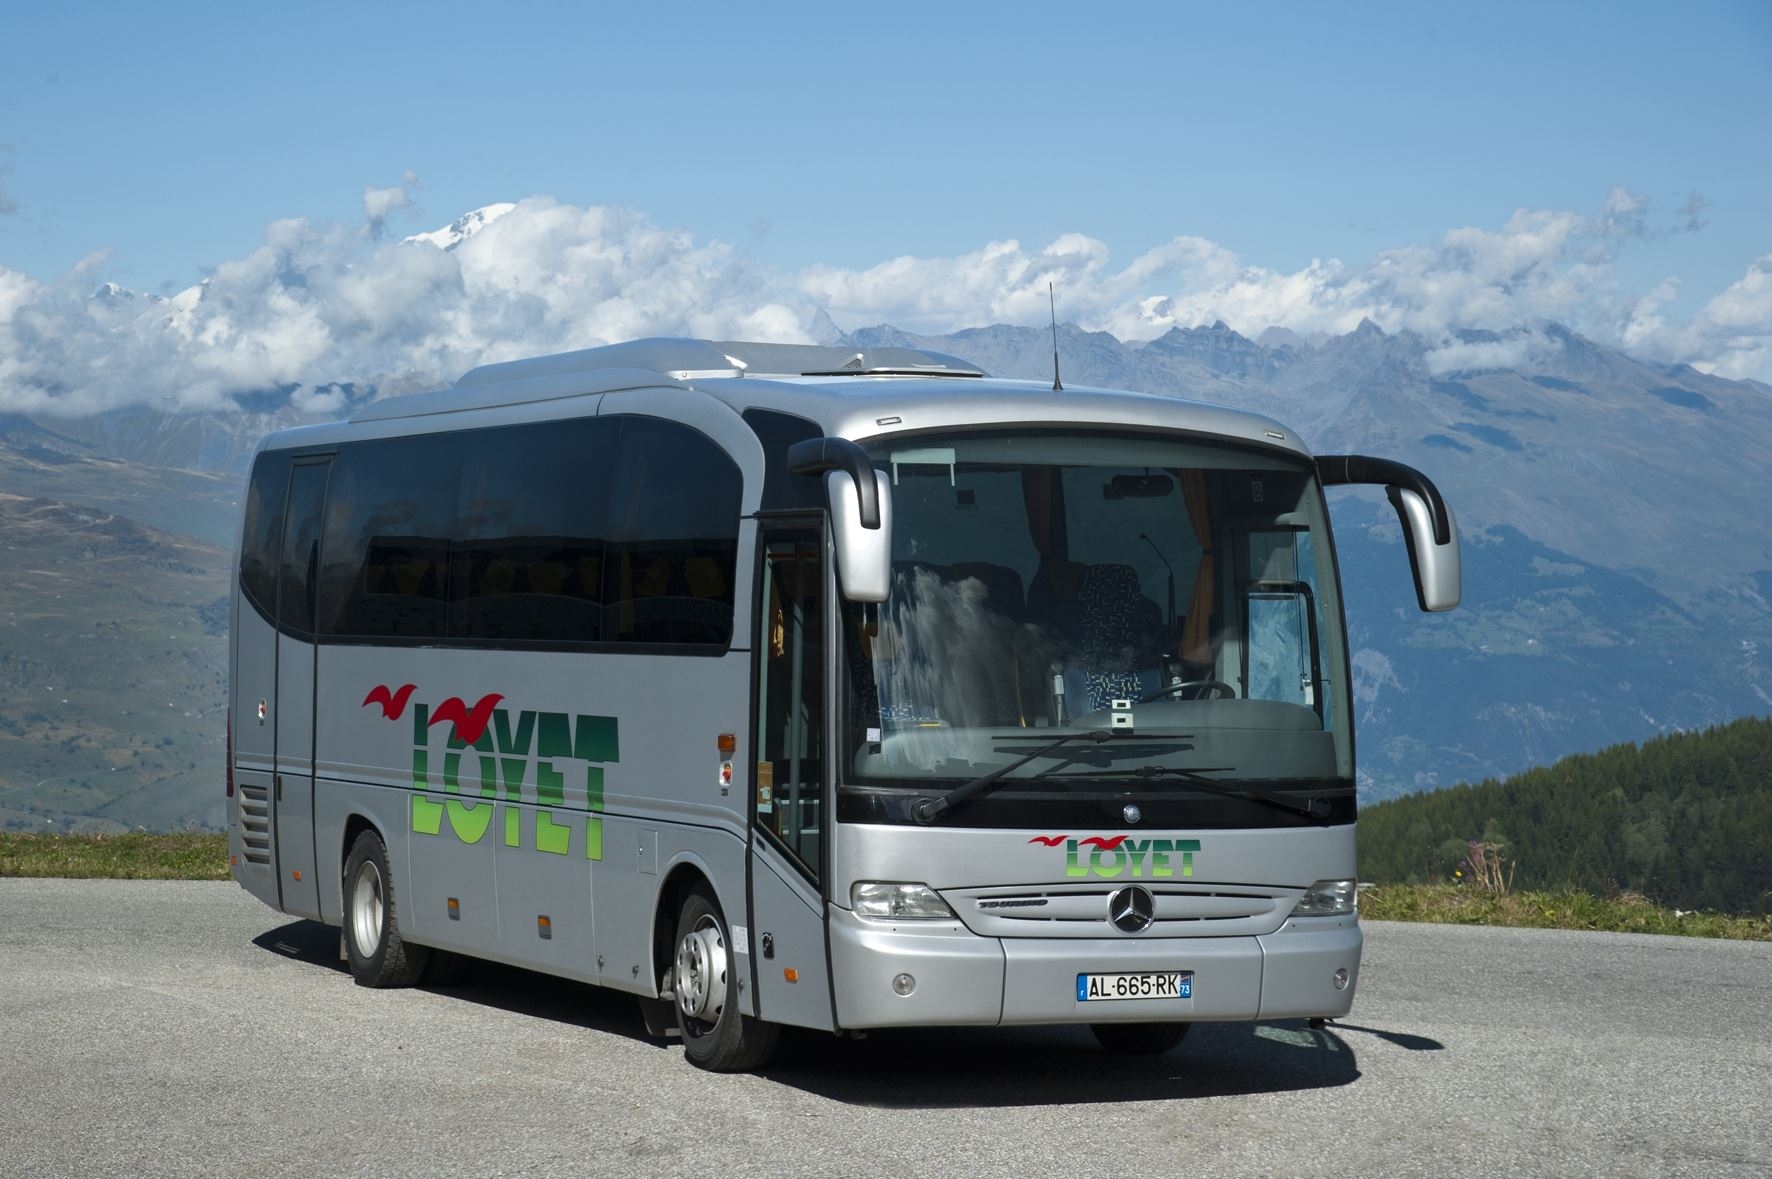 SATURDAY BUS TRANSFER FROM VAL THORENS TO GENEVA AIRPORT - 58€ PER TICKET